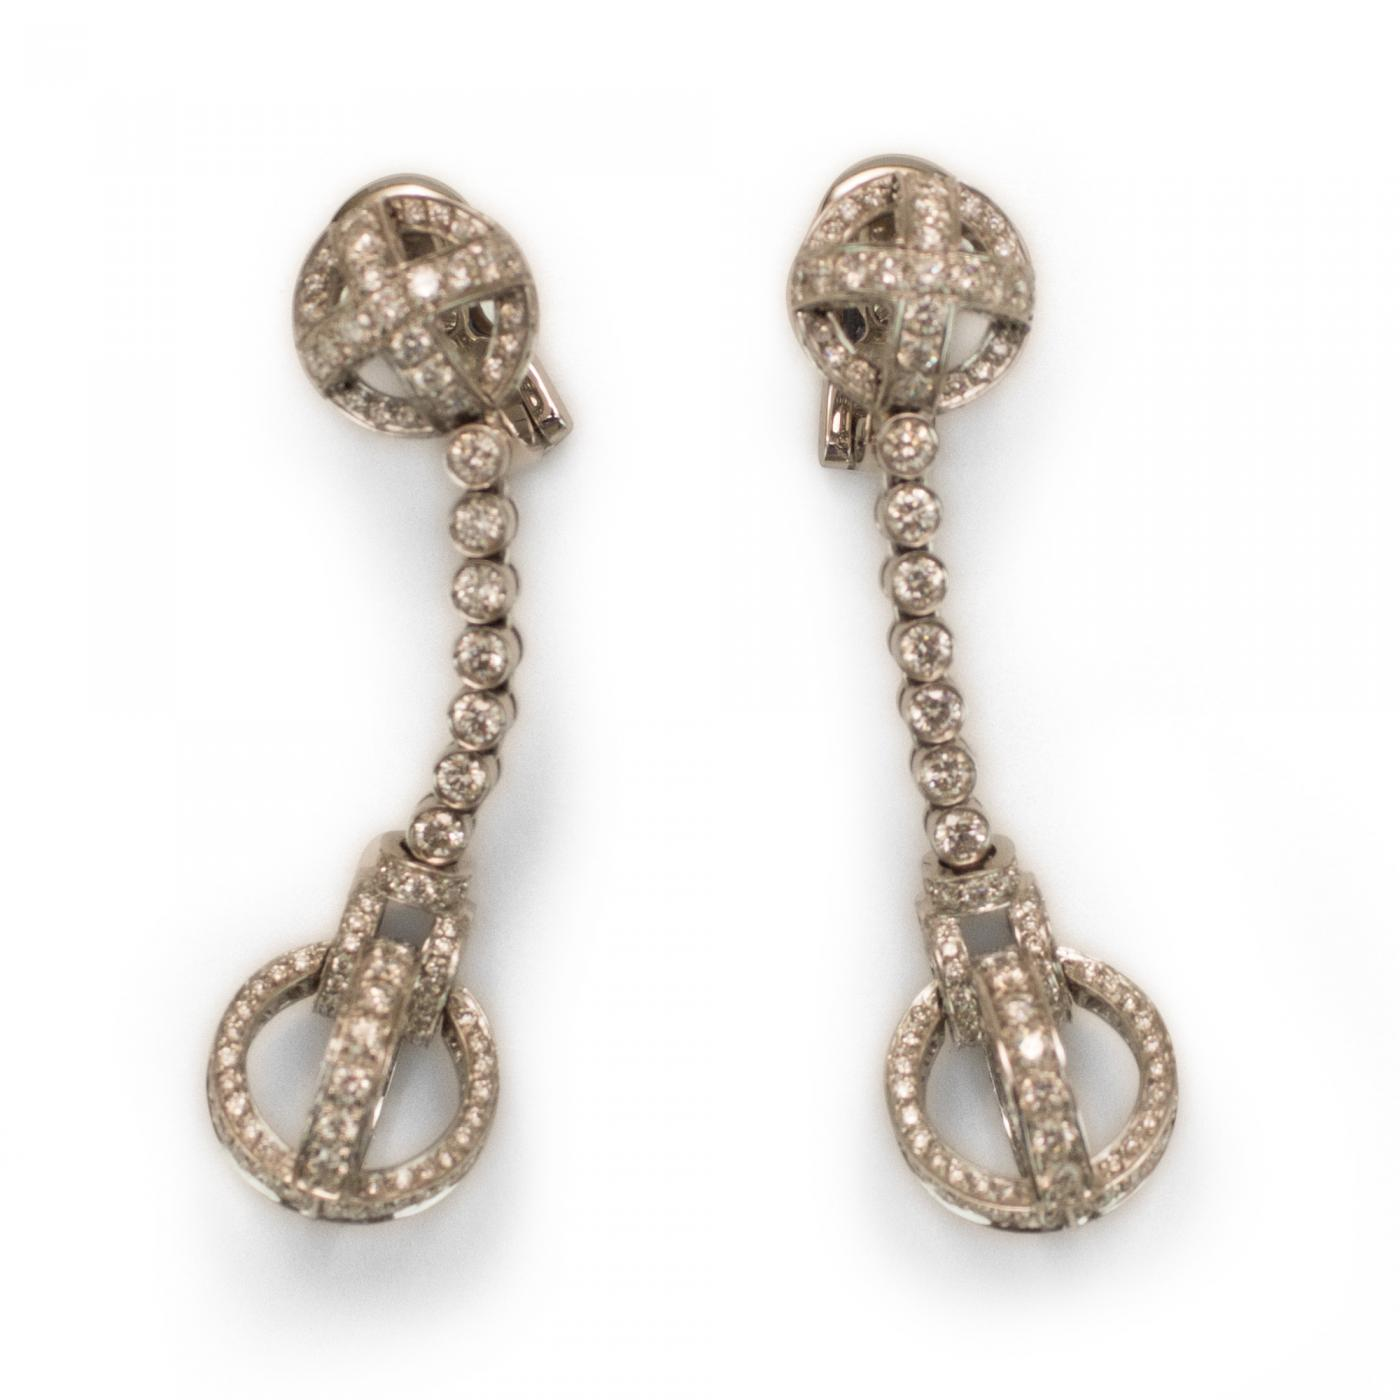 garrad jewelry garrard co garrard earrings 9251